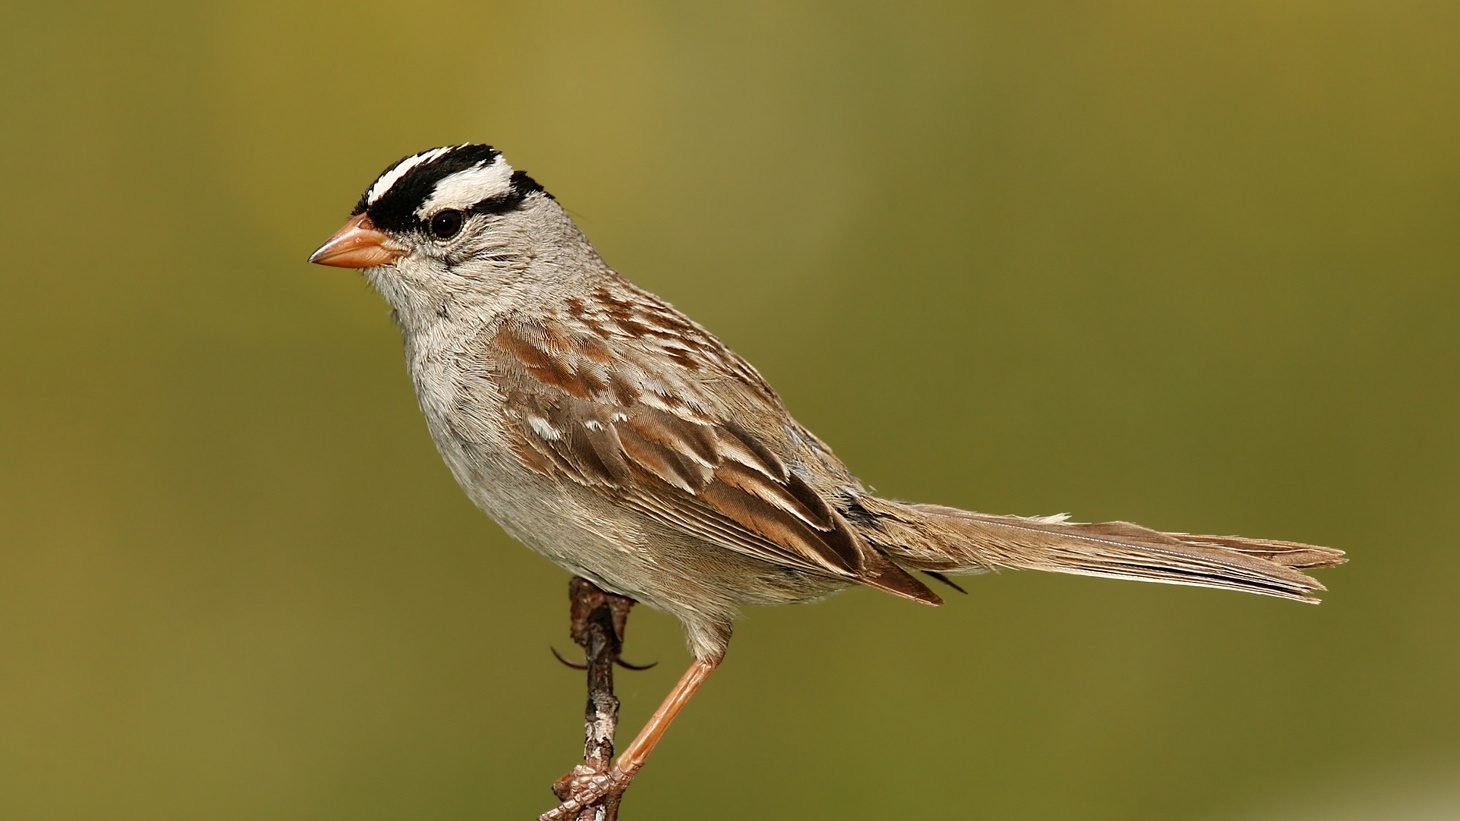 The song of the white-crowned sparrow in San Francisco has gotten more appealing during the pandemic, researchers say.